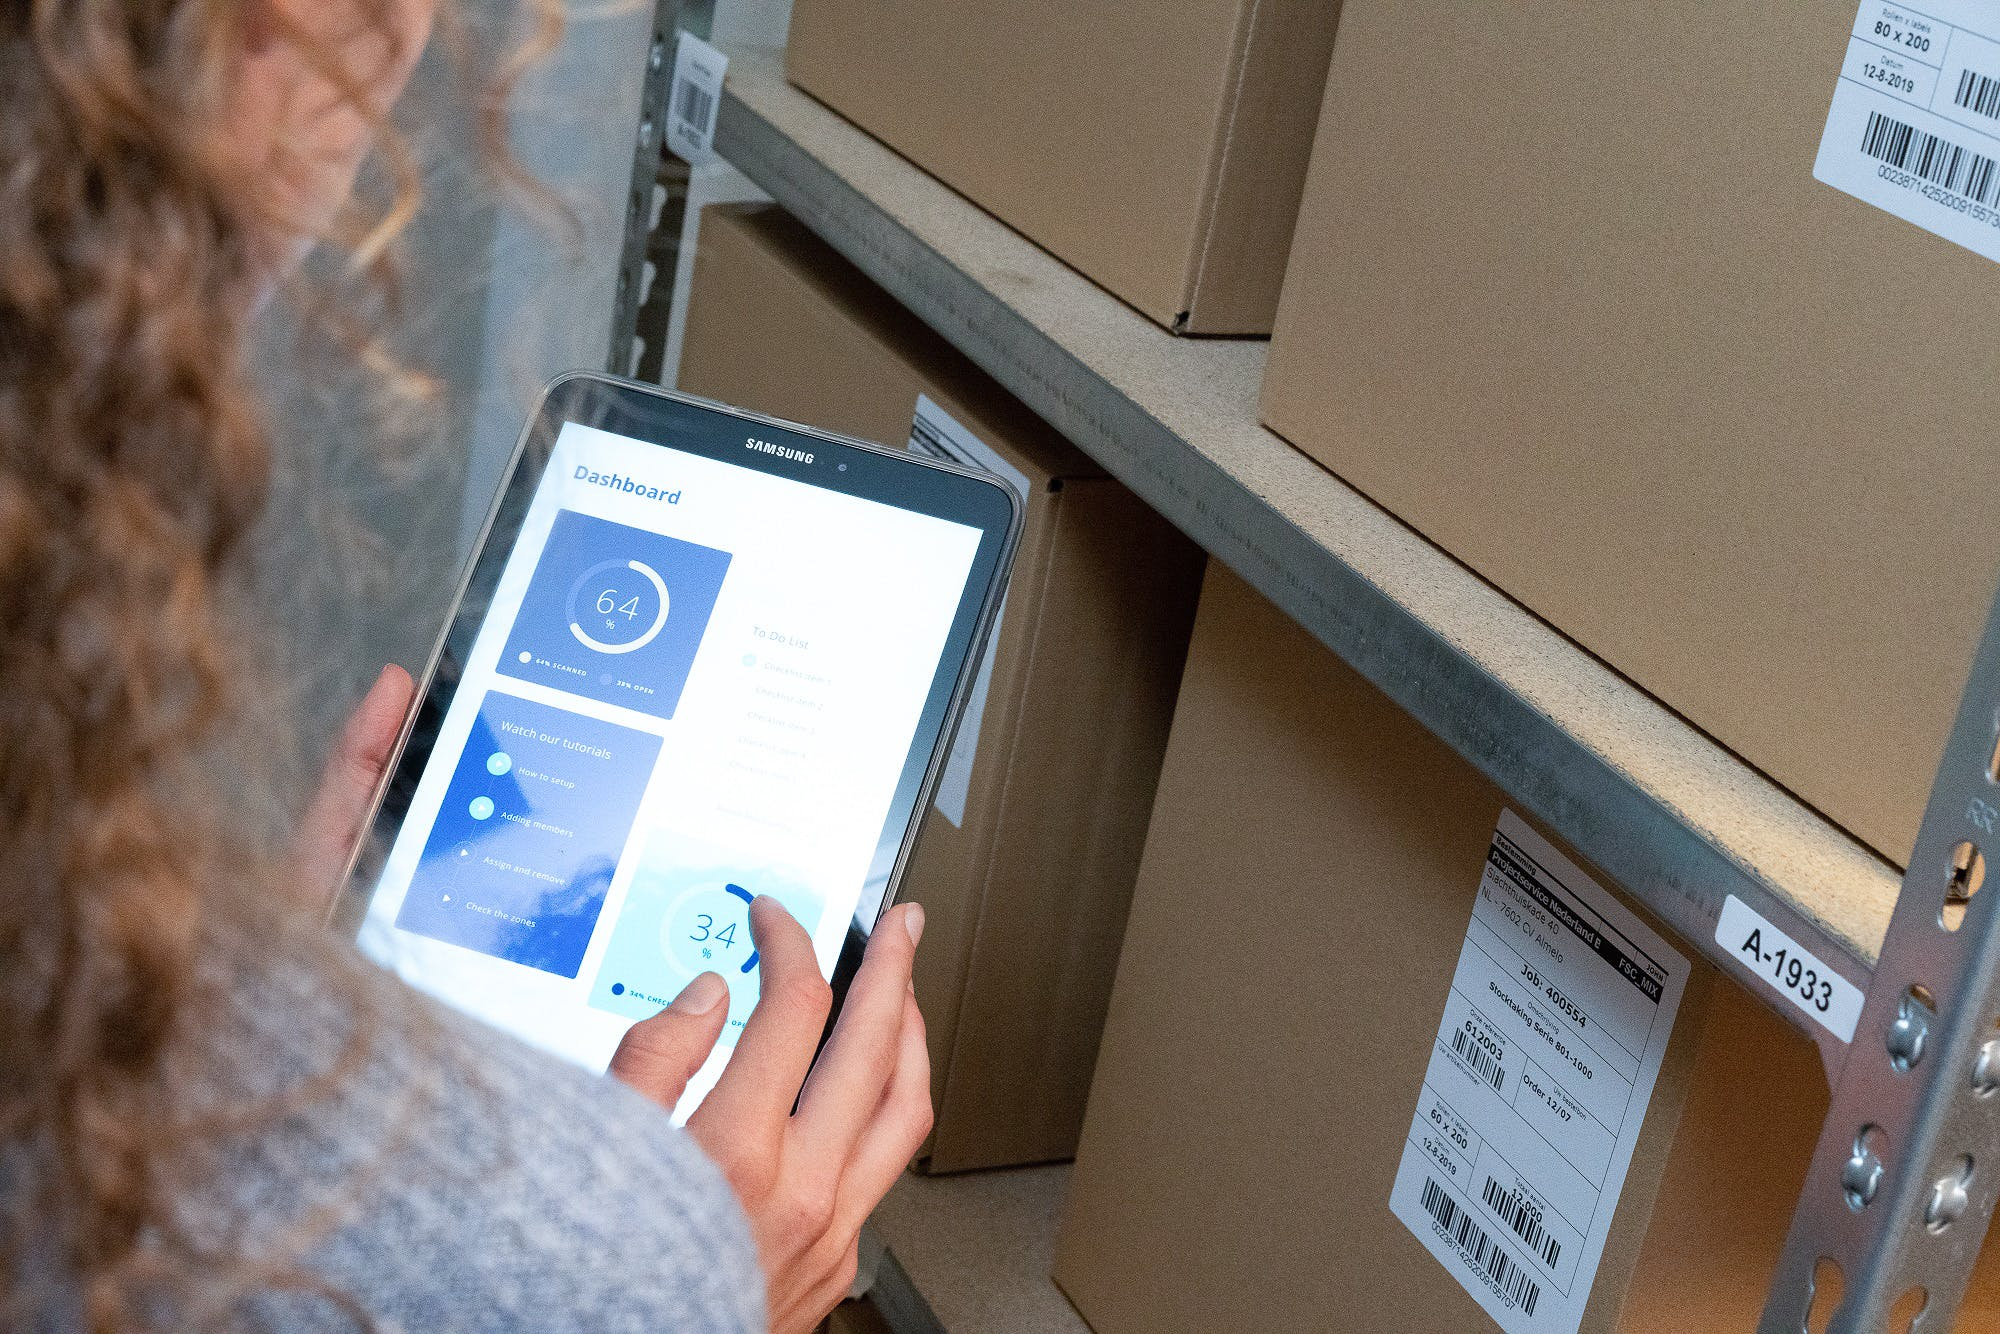 Employee is counting the inventory of a store using the Stocktrace inventory software